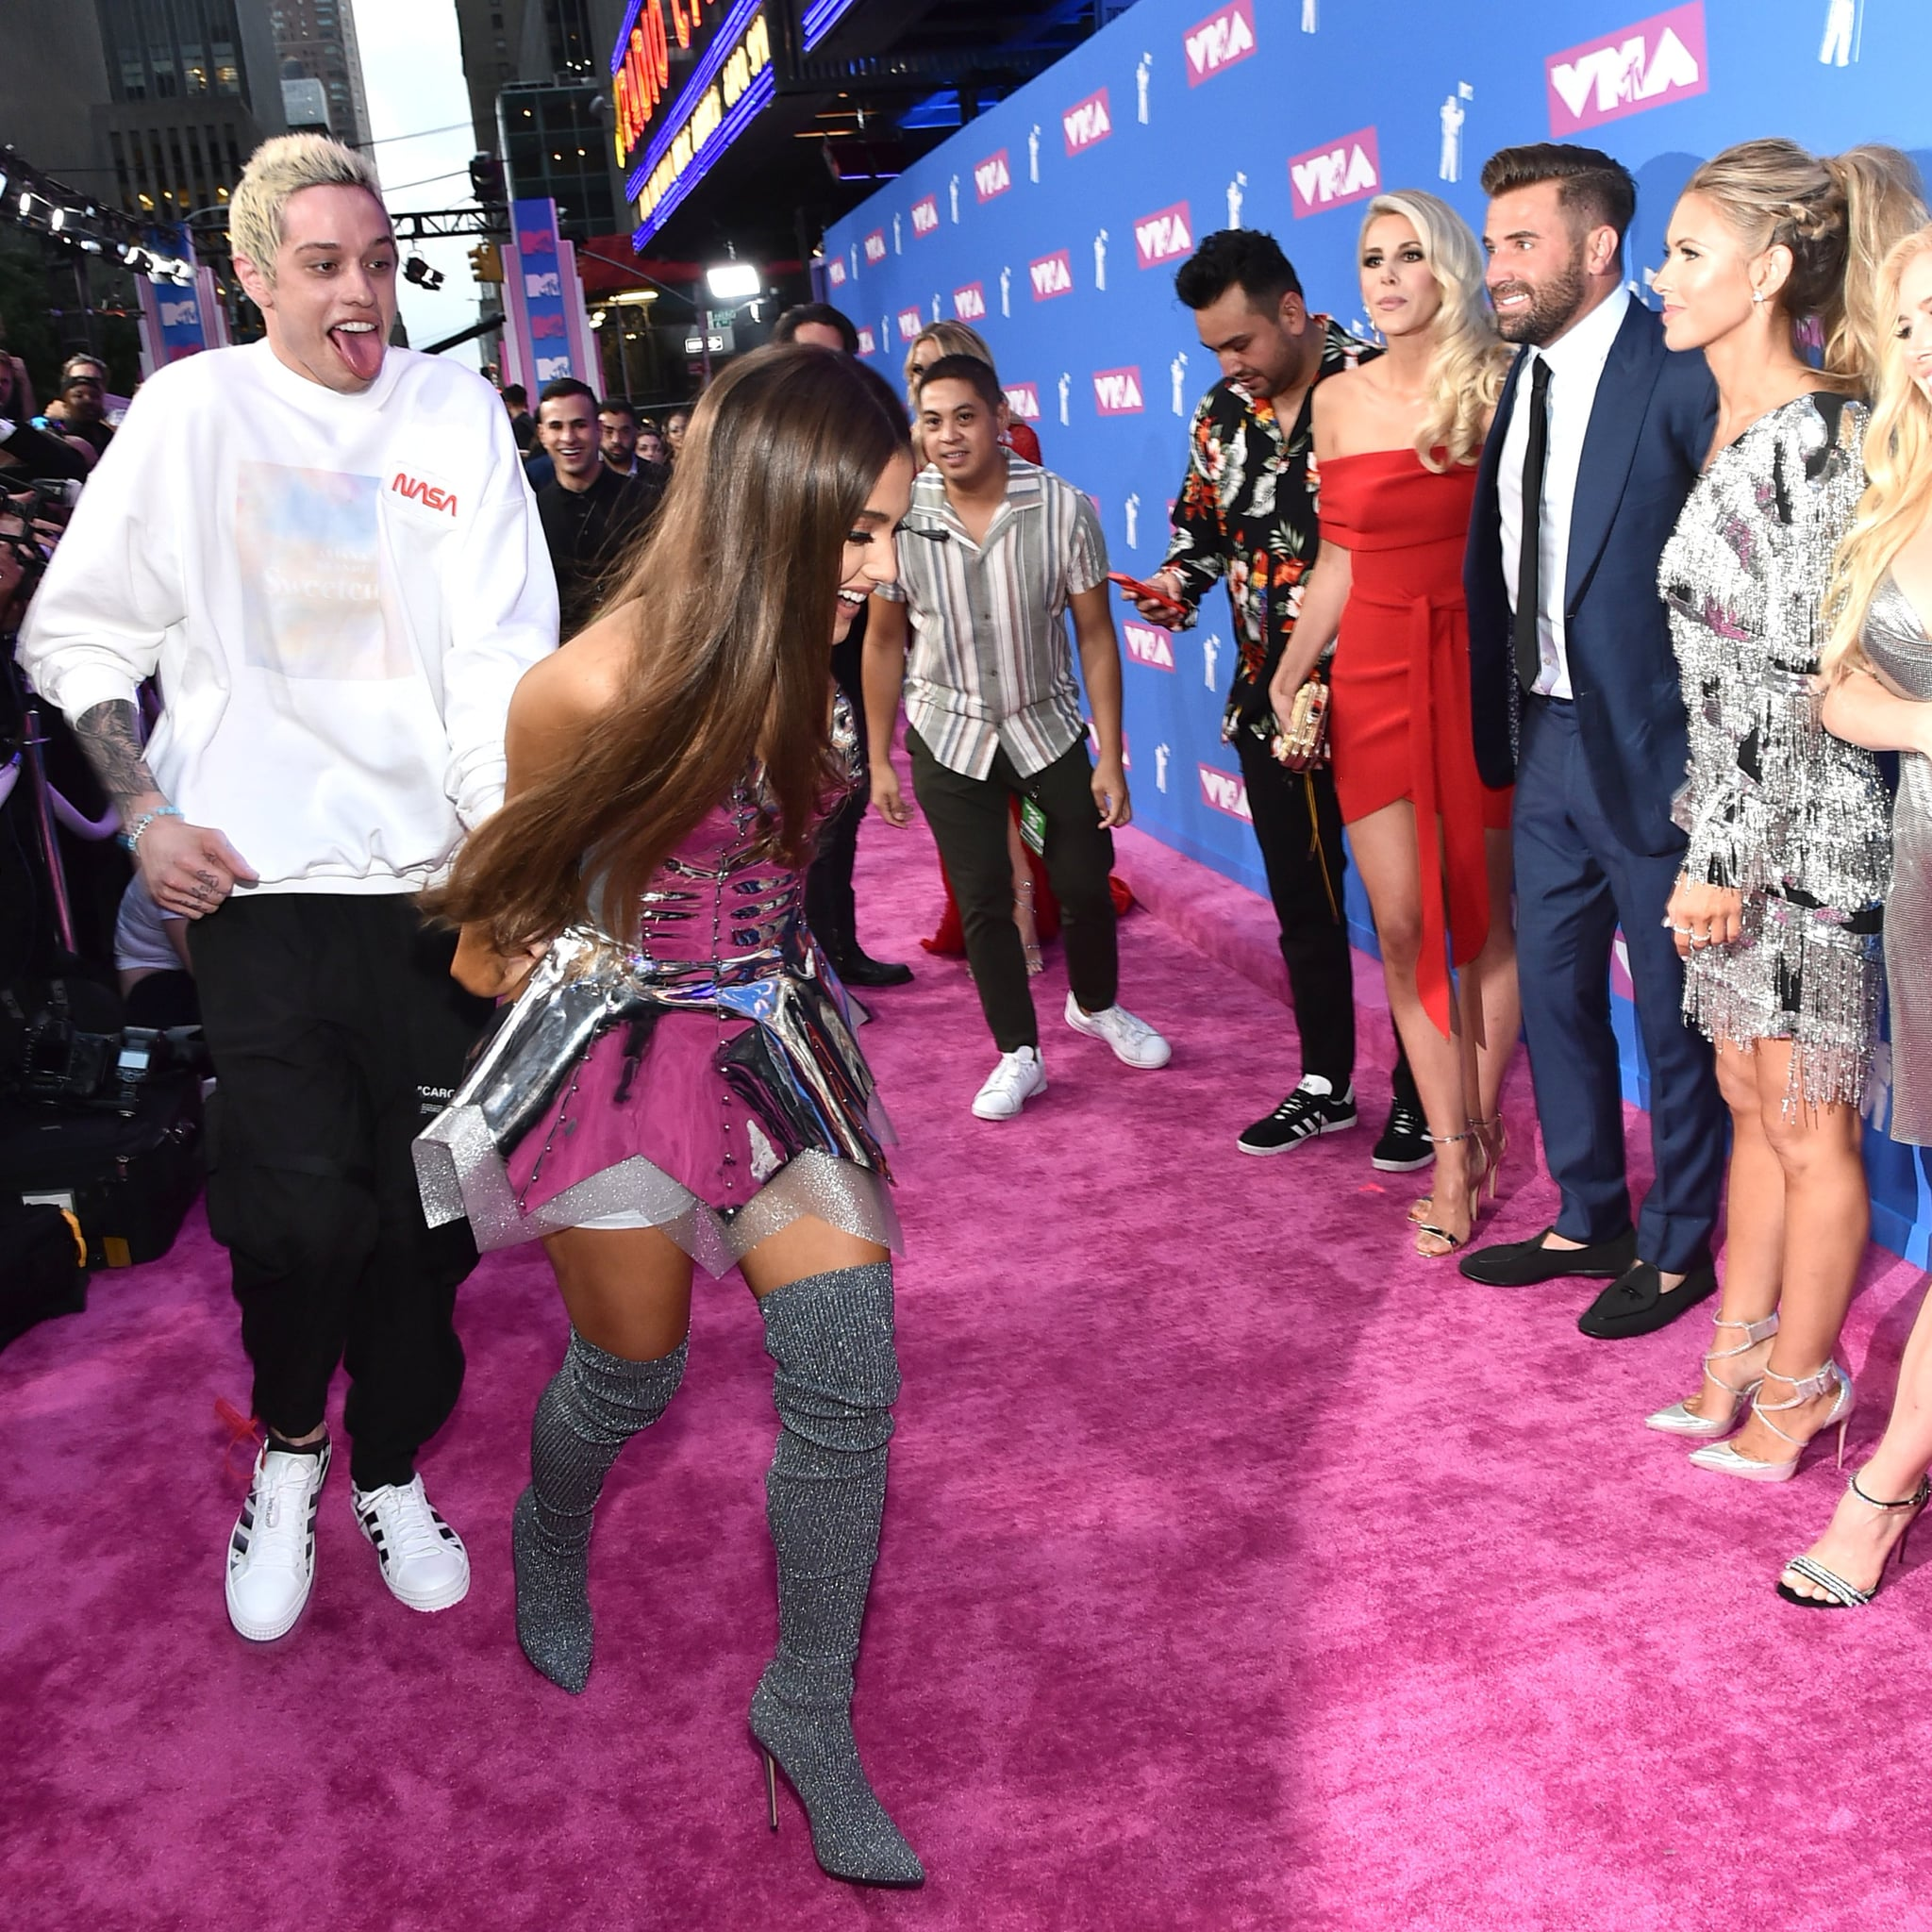 Why Did Ariana Grande and Pete Davidson Run Off VMAs Carpet ...